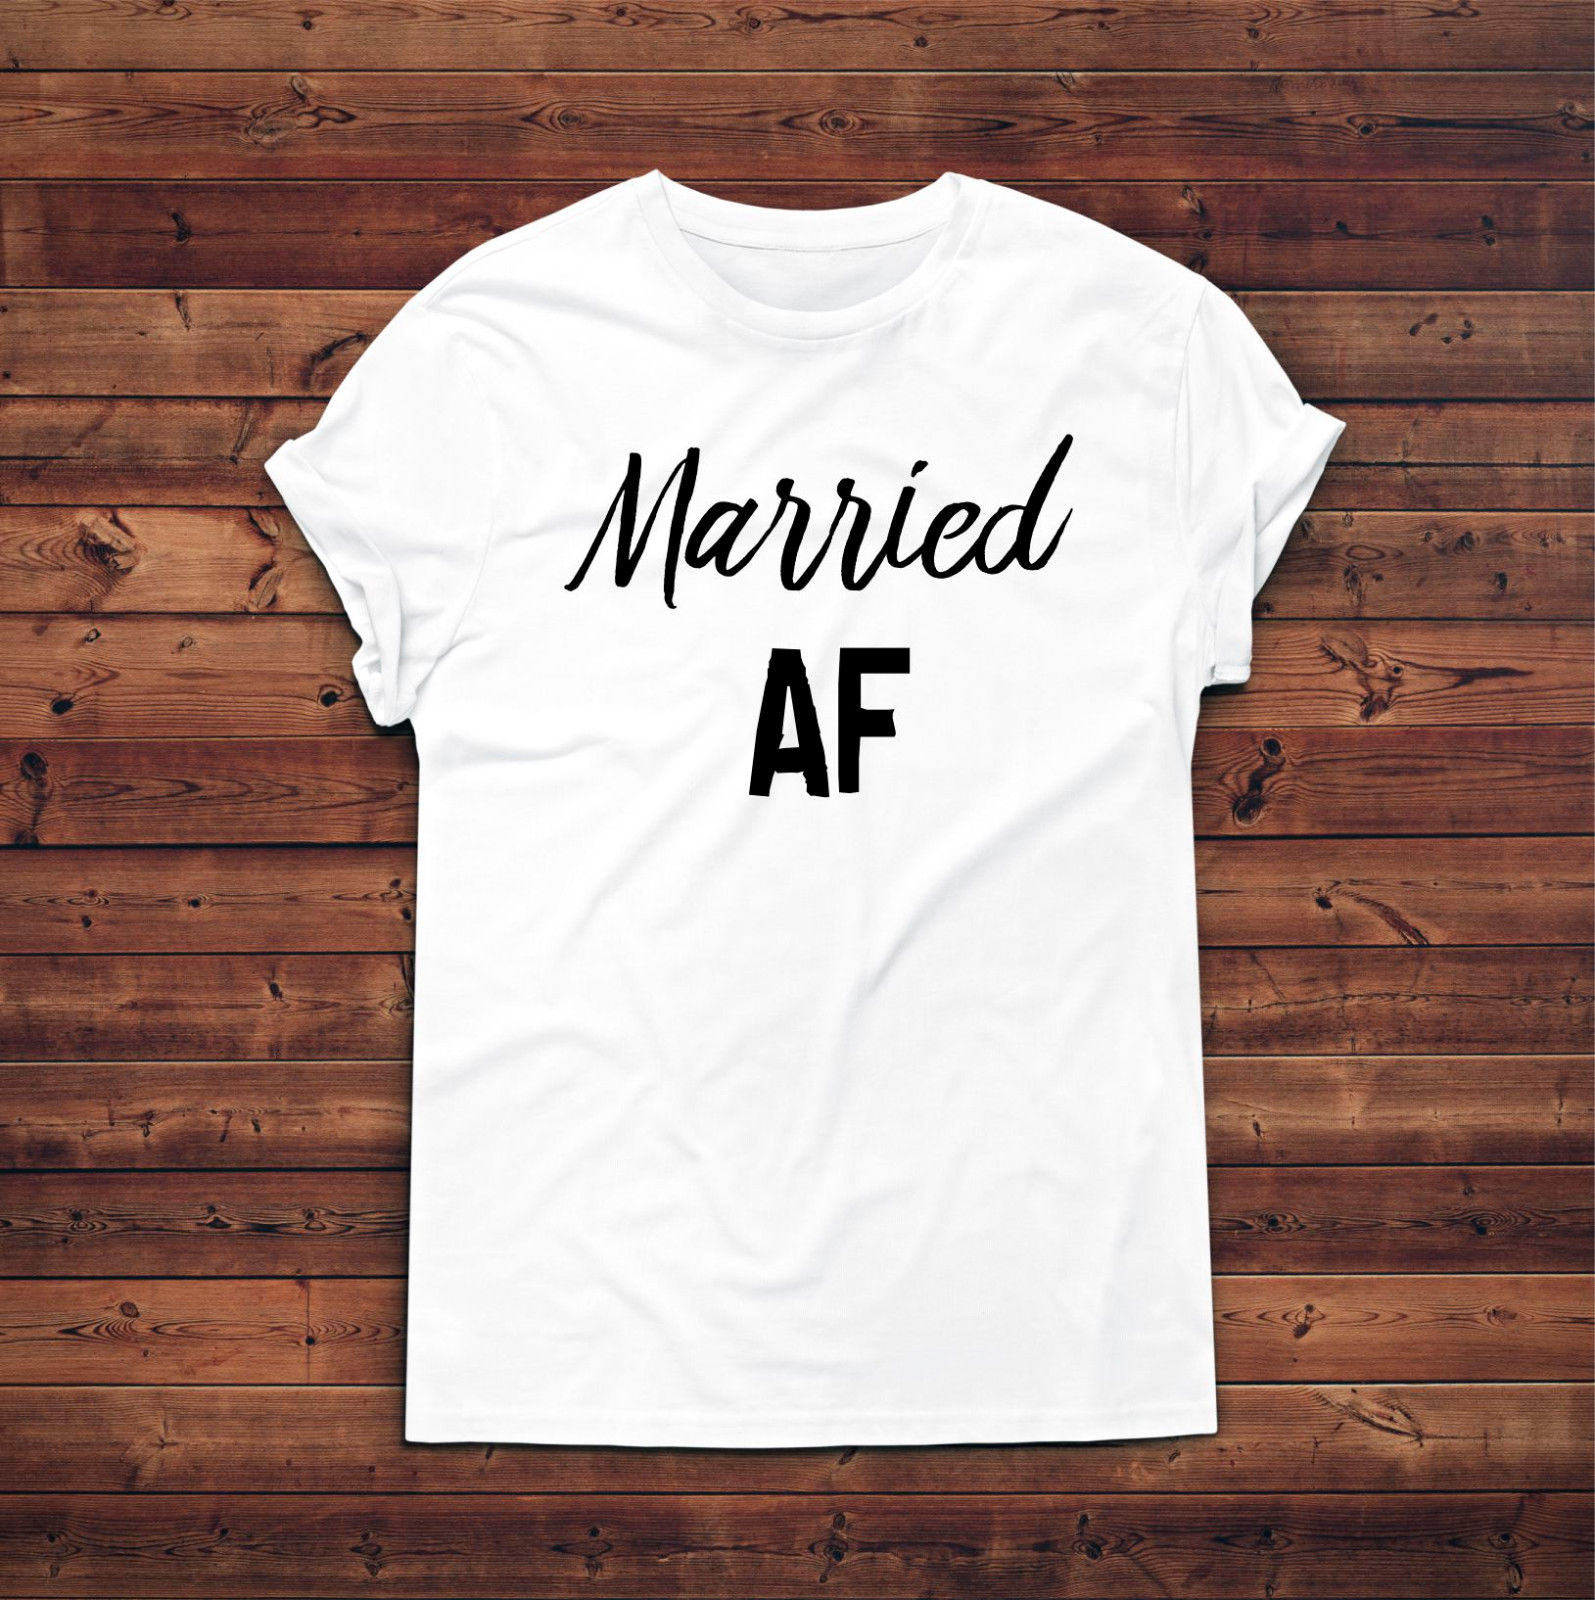 Married AF T shirt Marriage T shirt Gift For Her Engagement Gift Best Wife Wifey New T Shirts Funny Tops Tee New Unisex Funny in T Shirts from Men 39 s Clothing